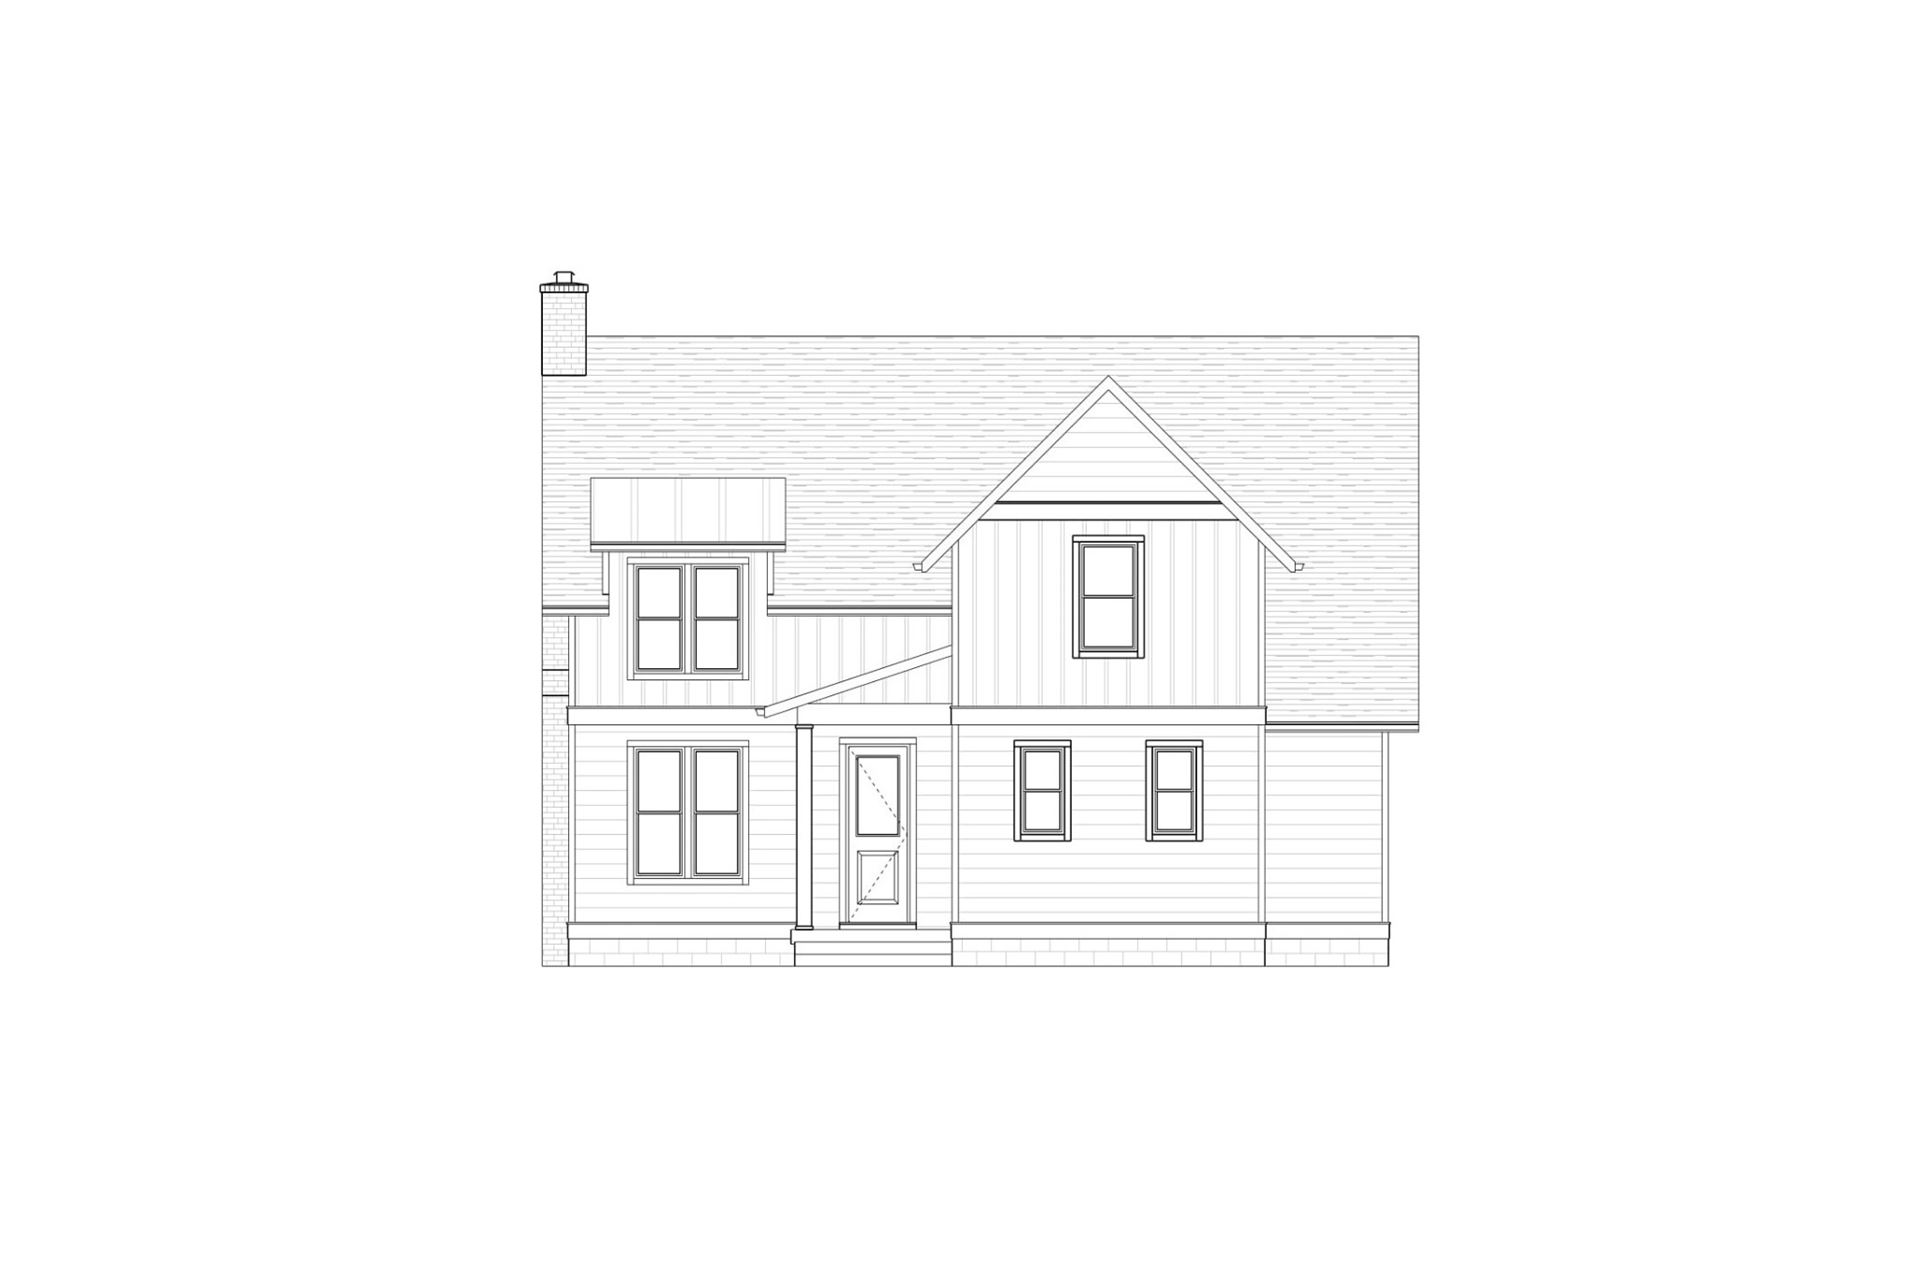 1516 17th Ave N, Nashville, TN 37208 - MLS#: 2219555